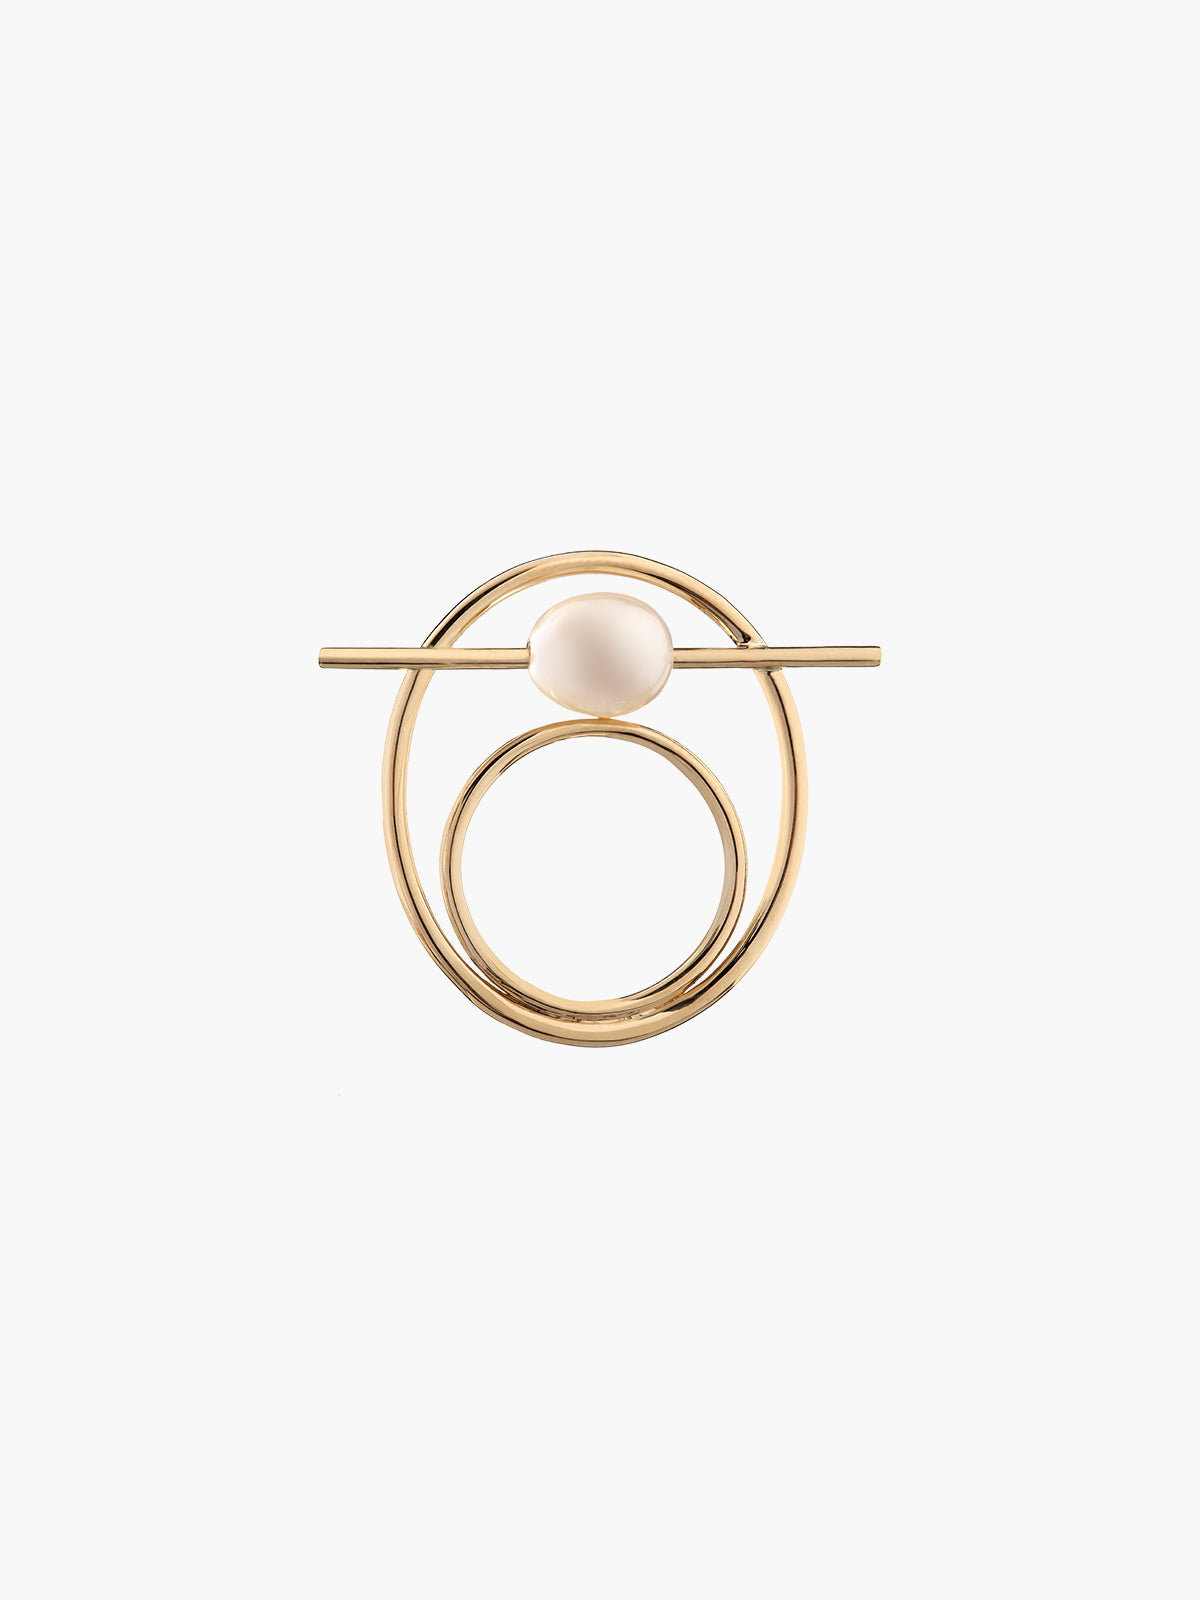 Exclusive Suno Pearl Ring Exclusive Suno Pearl Ring